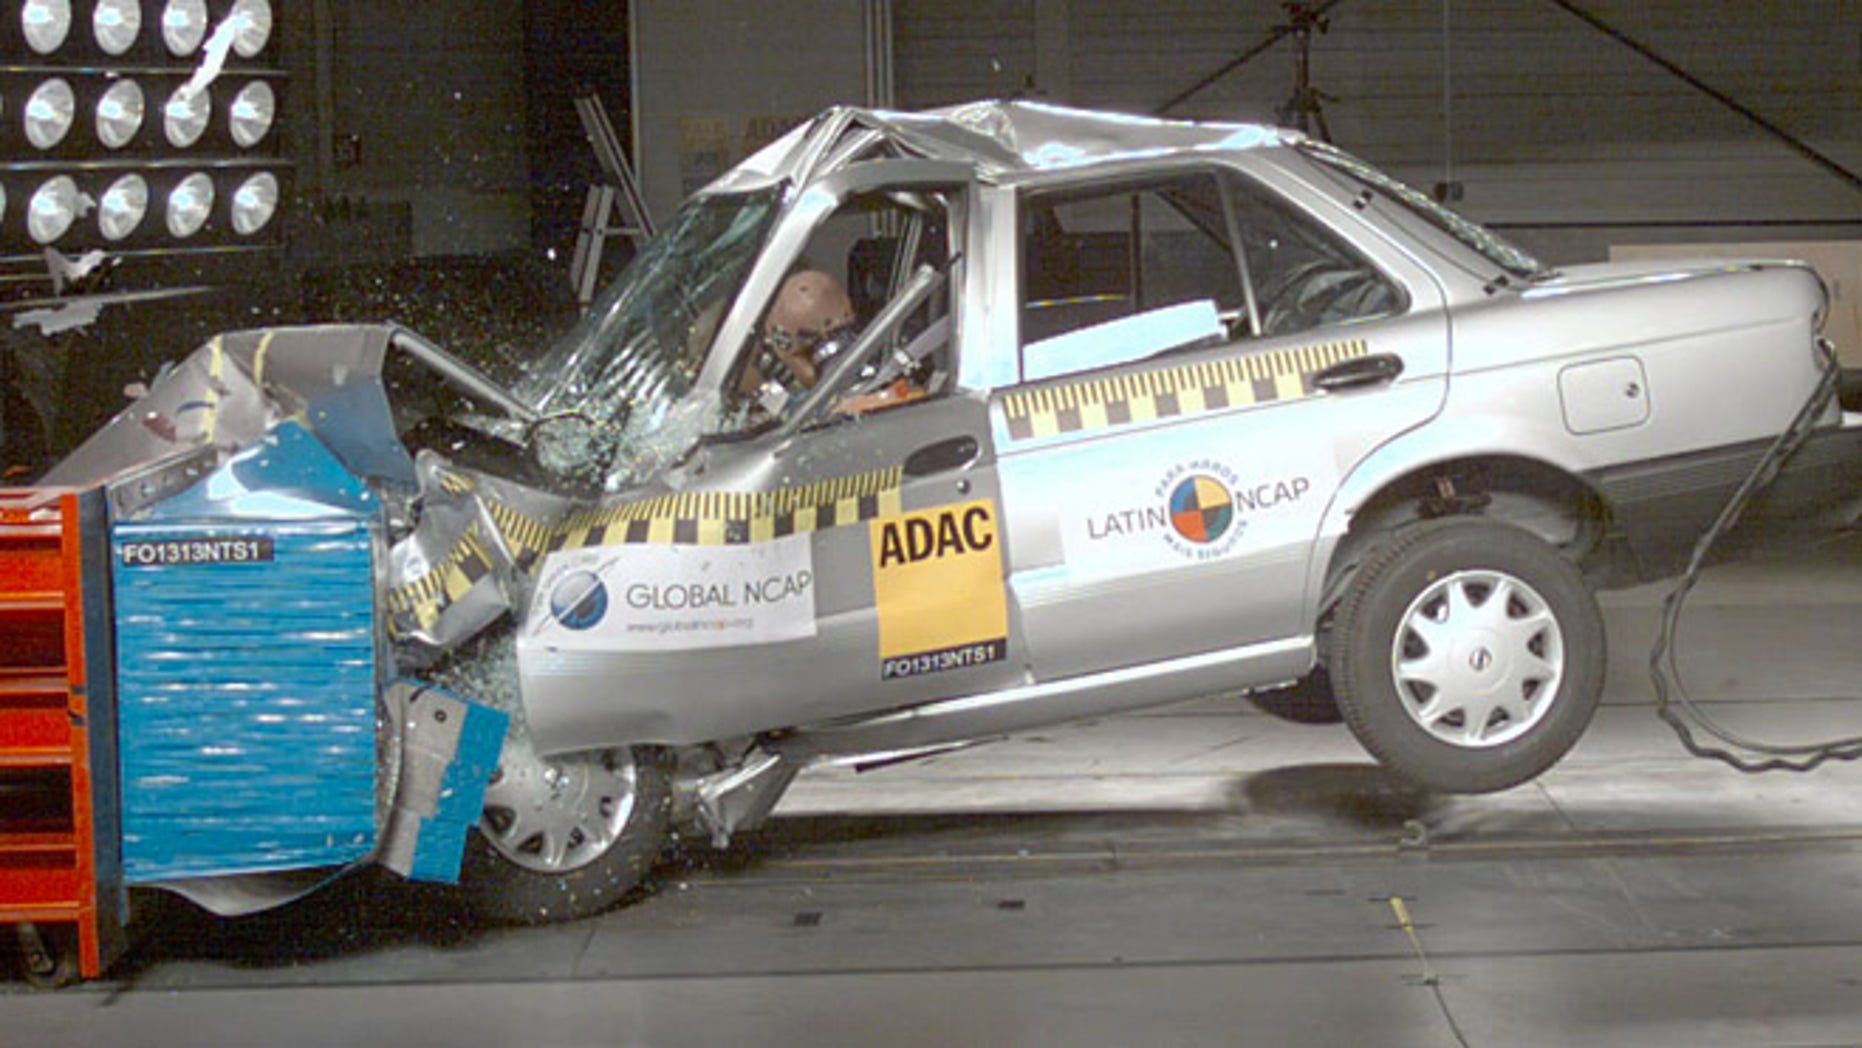 In this image taken from a March 2013 video released by independent crash-test group Latin NCAP on Nov. 27, 2013, a Nissan model Tsuru vehicle with no airbags is crash-tested at Latin NCAP's facilities in Landsberg am Lech, Germany.VMany international car manufacturers with plants in Mexico produce two versions of cars; sending models with air bags, antilock brakes and electronic stability control to the United States, and cars without those safety features to the local market. (AP Photo/Latin NCAP)